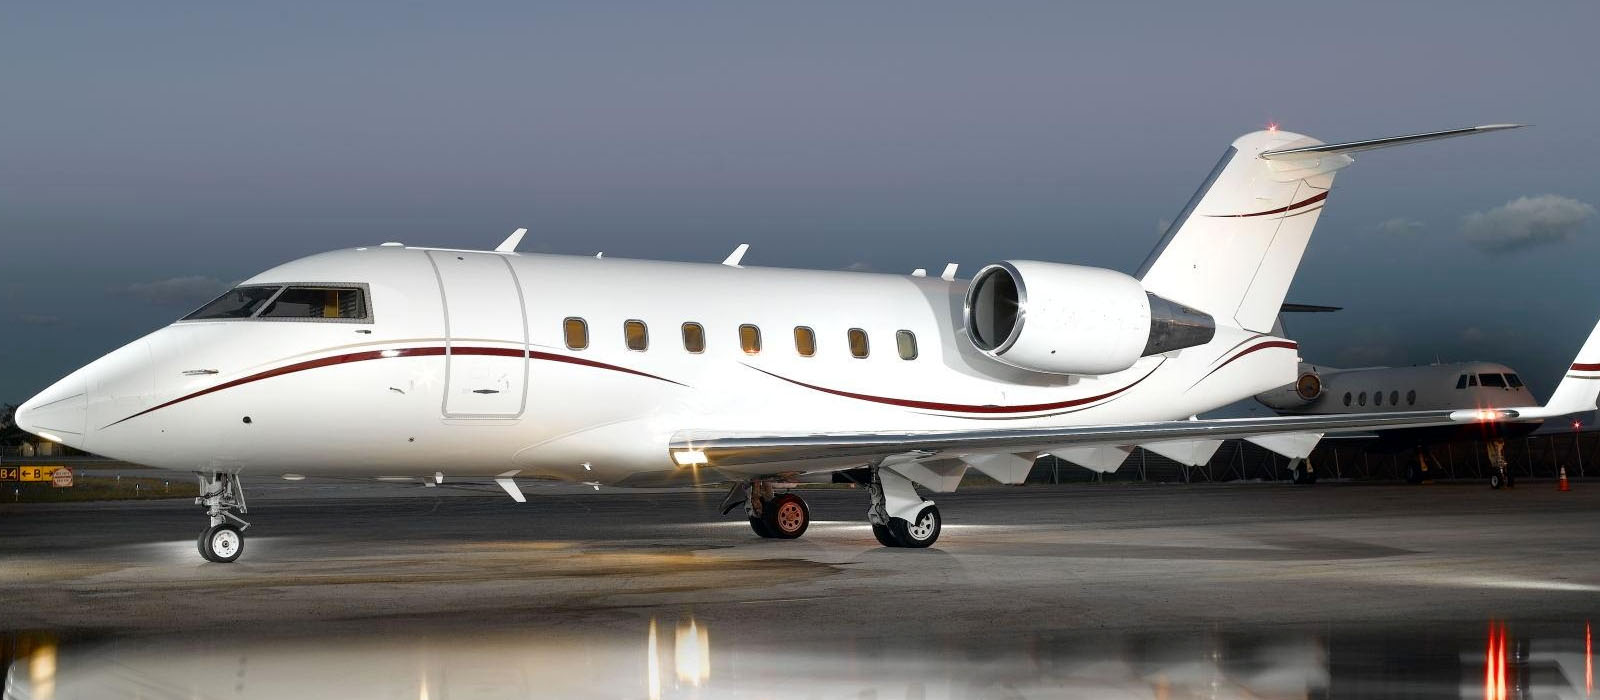 Jet Privato Genova : Voli privati just business luxury services